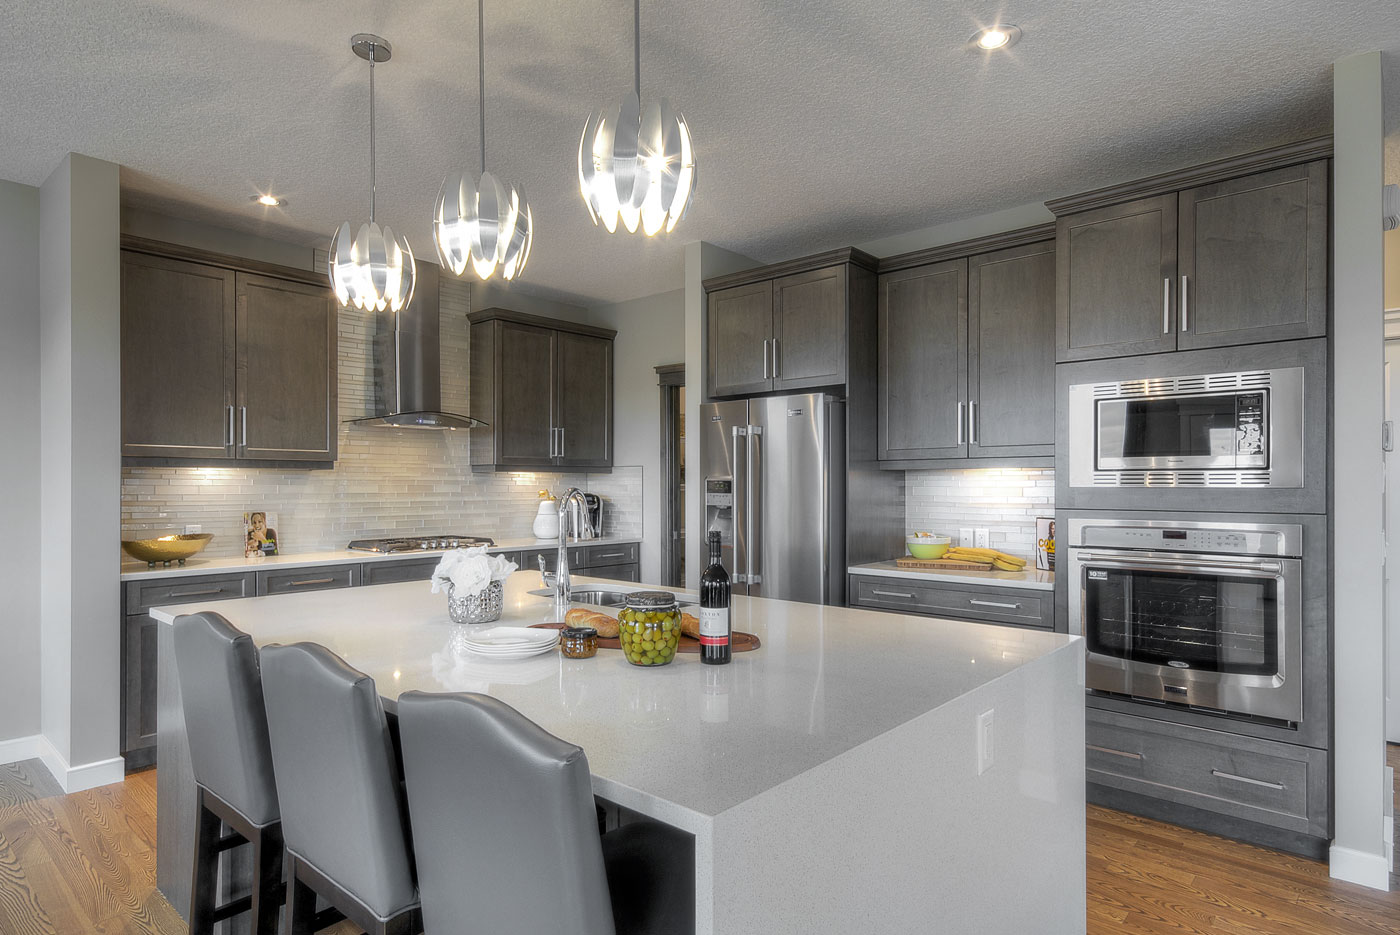 Ory Kitchen cabinets by Superior Cabinets